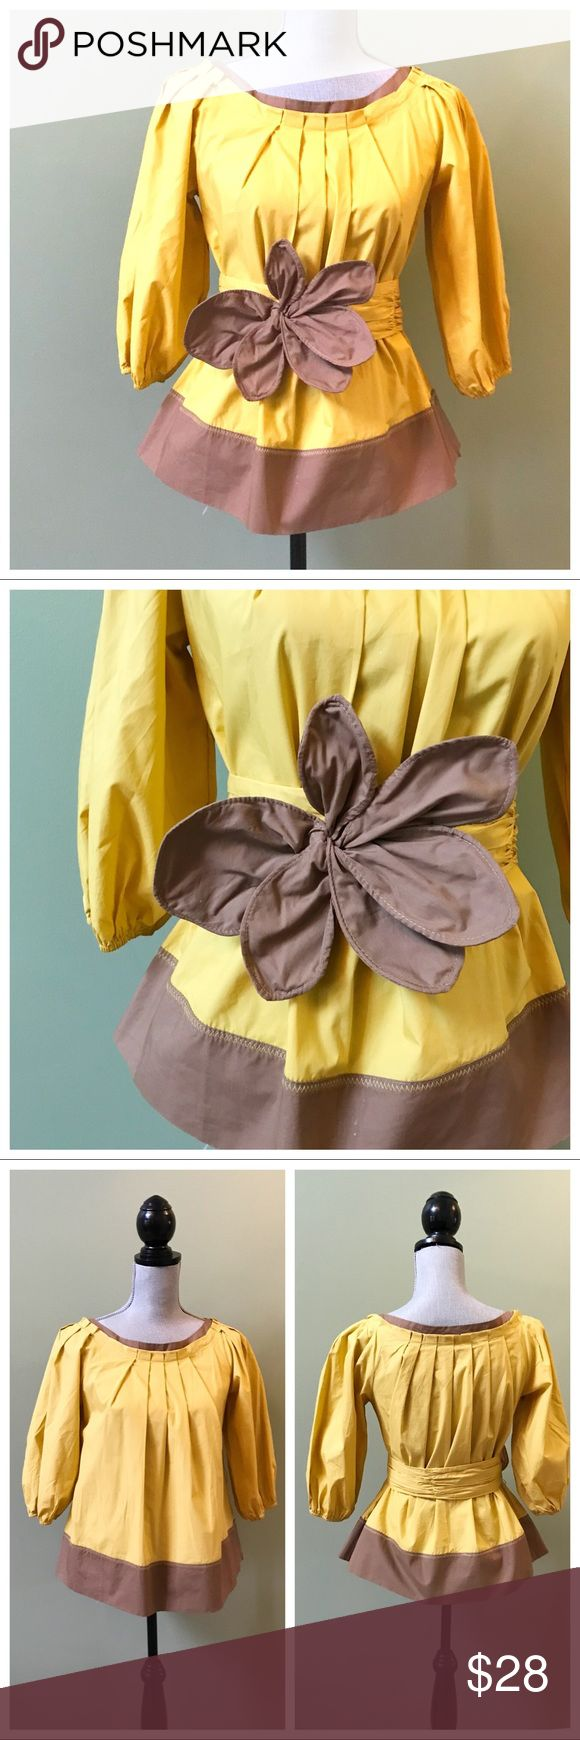 Ryu Yellow Brown Bow Top Yellow and brown top with a belt that has 2 options for sizing. Elasticized sleeve ends, great condition, size small. Ryu Tops Blouses